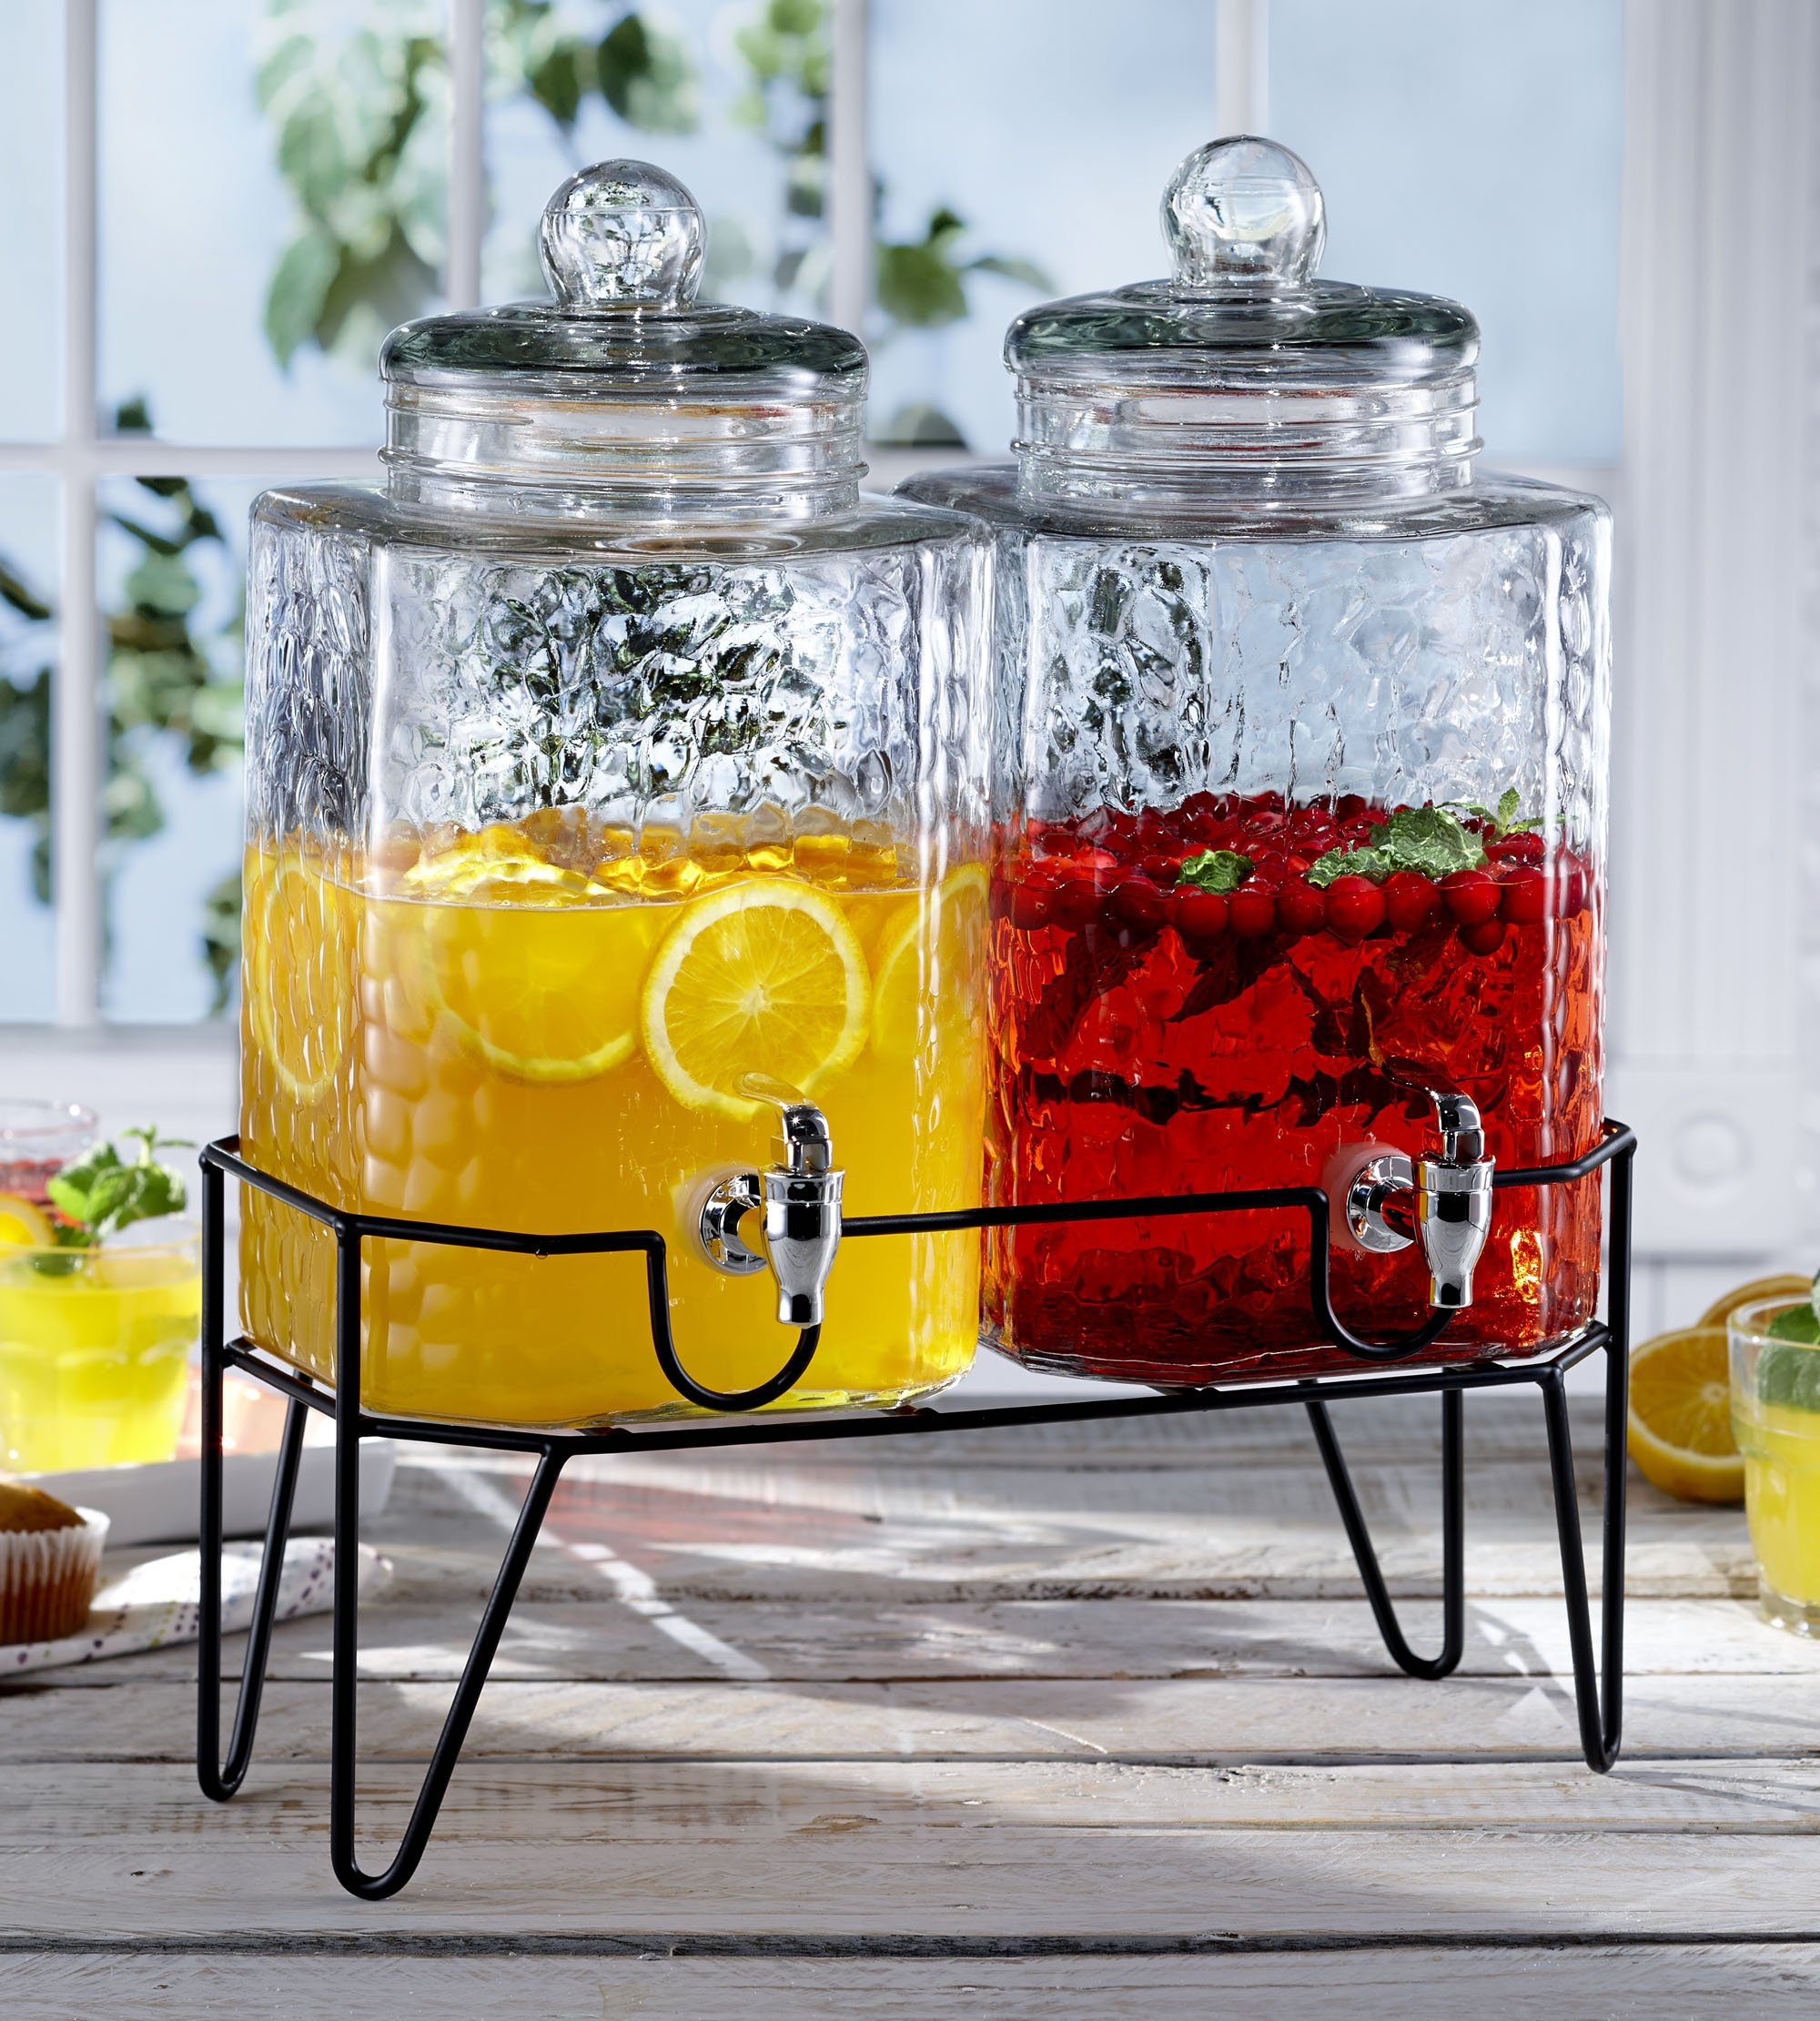 Style Setter Hamburg 210266-GB 1.5 Gallon Each Glass Beverage Drink Dispensers with Metal Stand (Set of 2), 8.2 x 16.8'' Clear by Style Setter (Image #2)